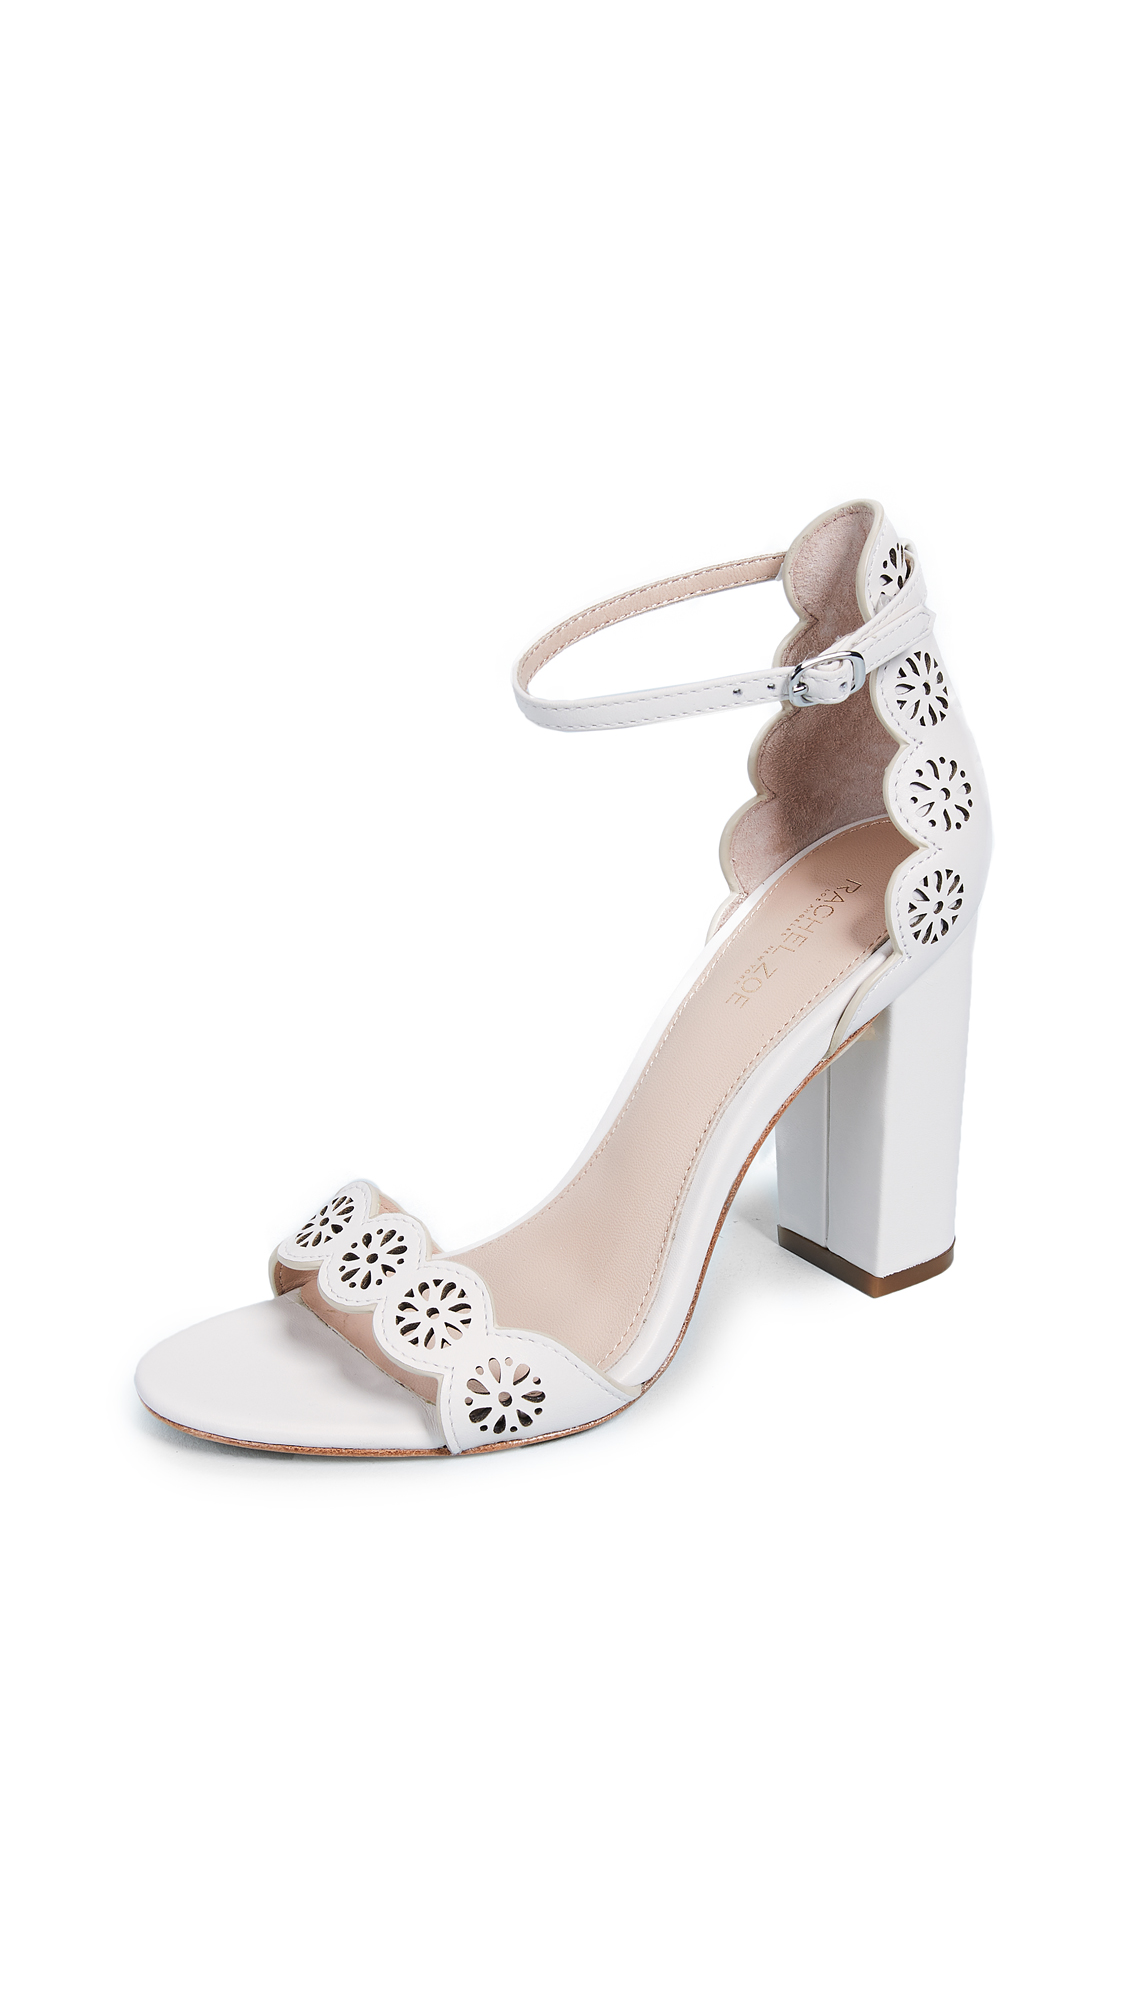 Rachel Zoe Waverly Sandals - Ecru